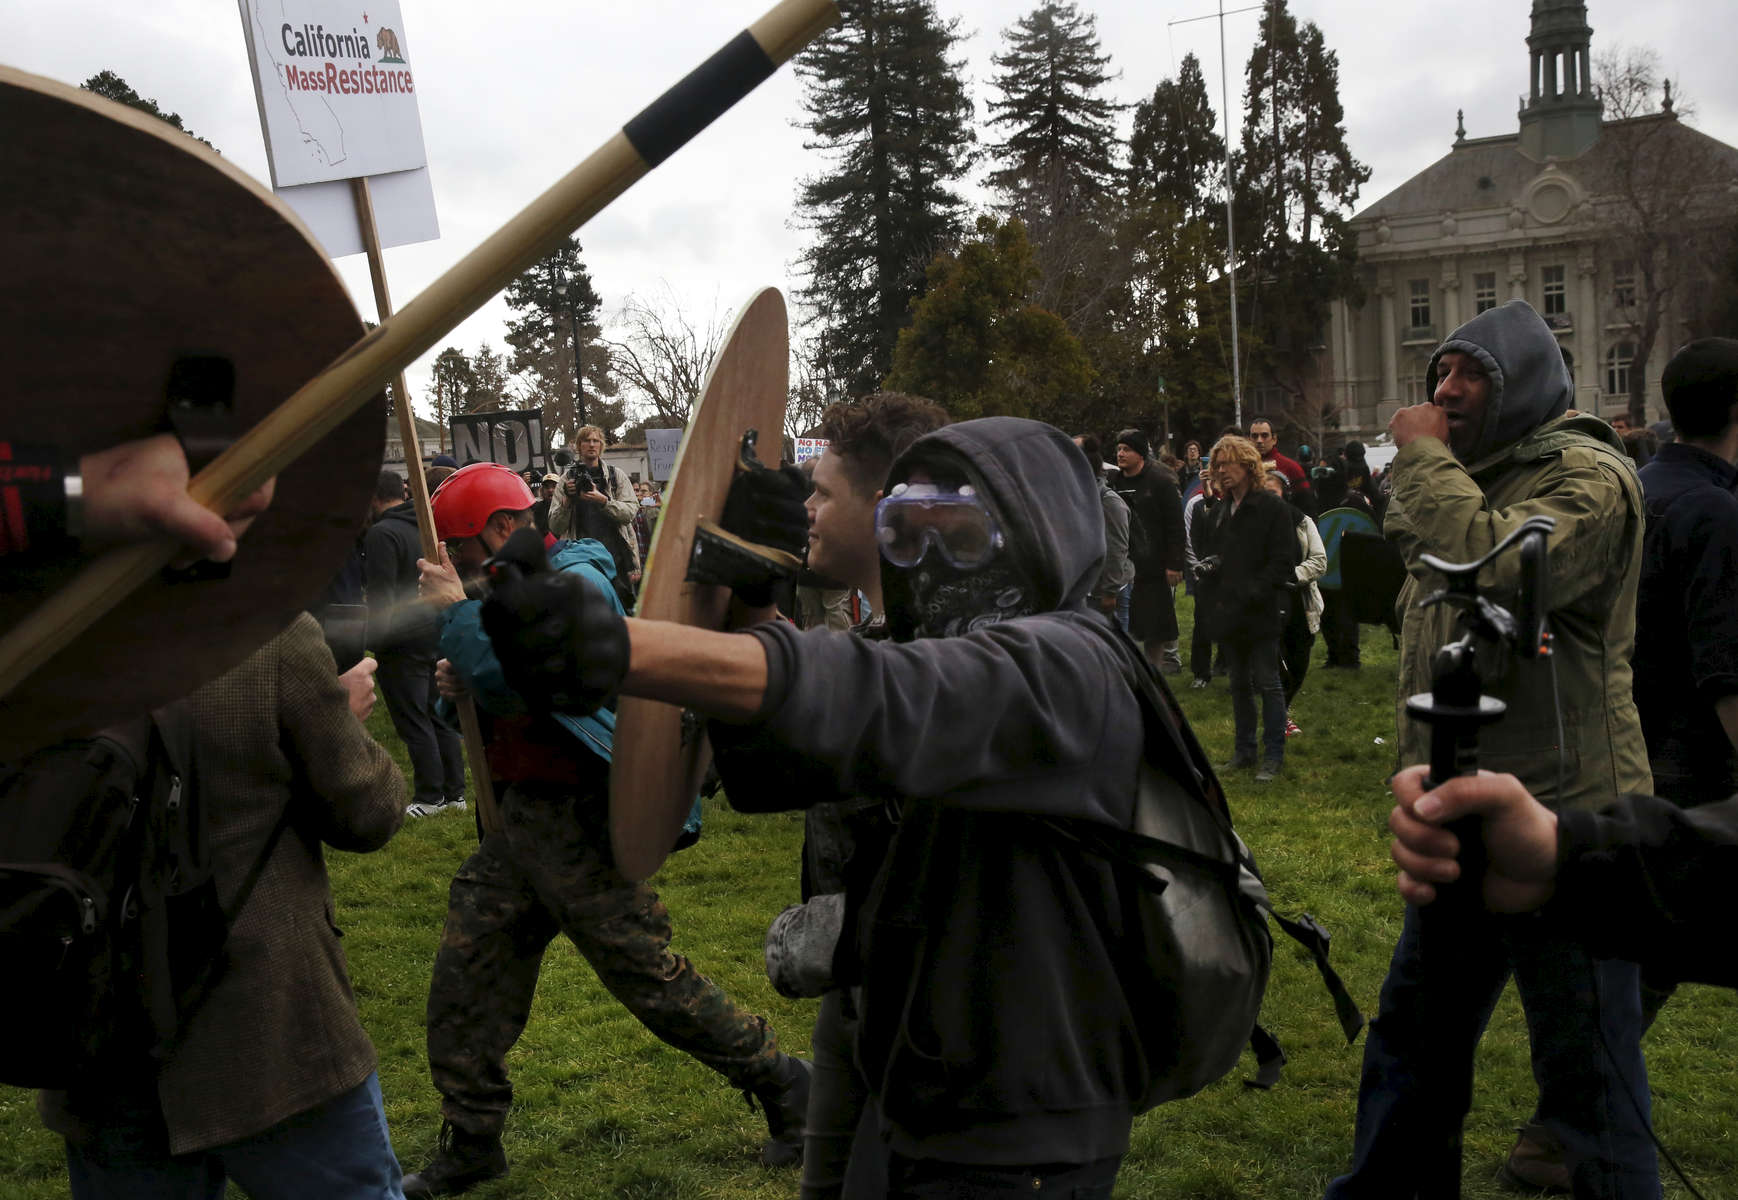 An anti-fascist anarchist sprays pepper spray directly at a Trump supporter after a Trump supporter pepper sprayed the crowd during a pro-President Donald Trump rally and march at the Martin Luther King Jr. Civic Center park March 4, 2017 in Berkeley, Calif.